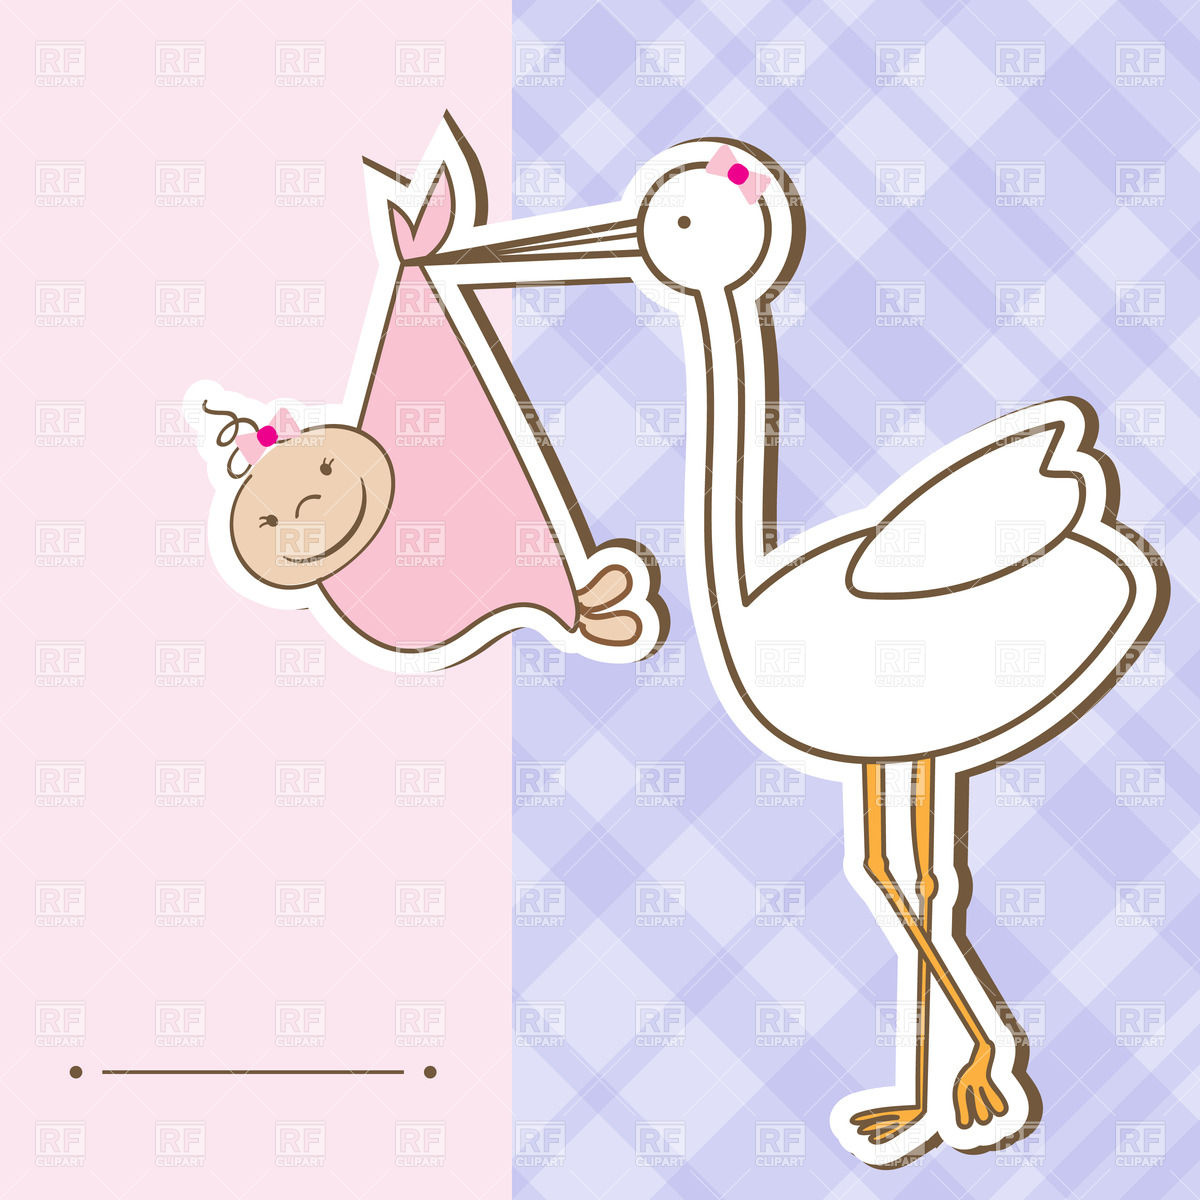 Stork holding baby girl and place for text Vector Image #23482.